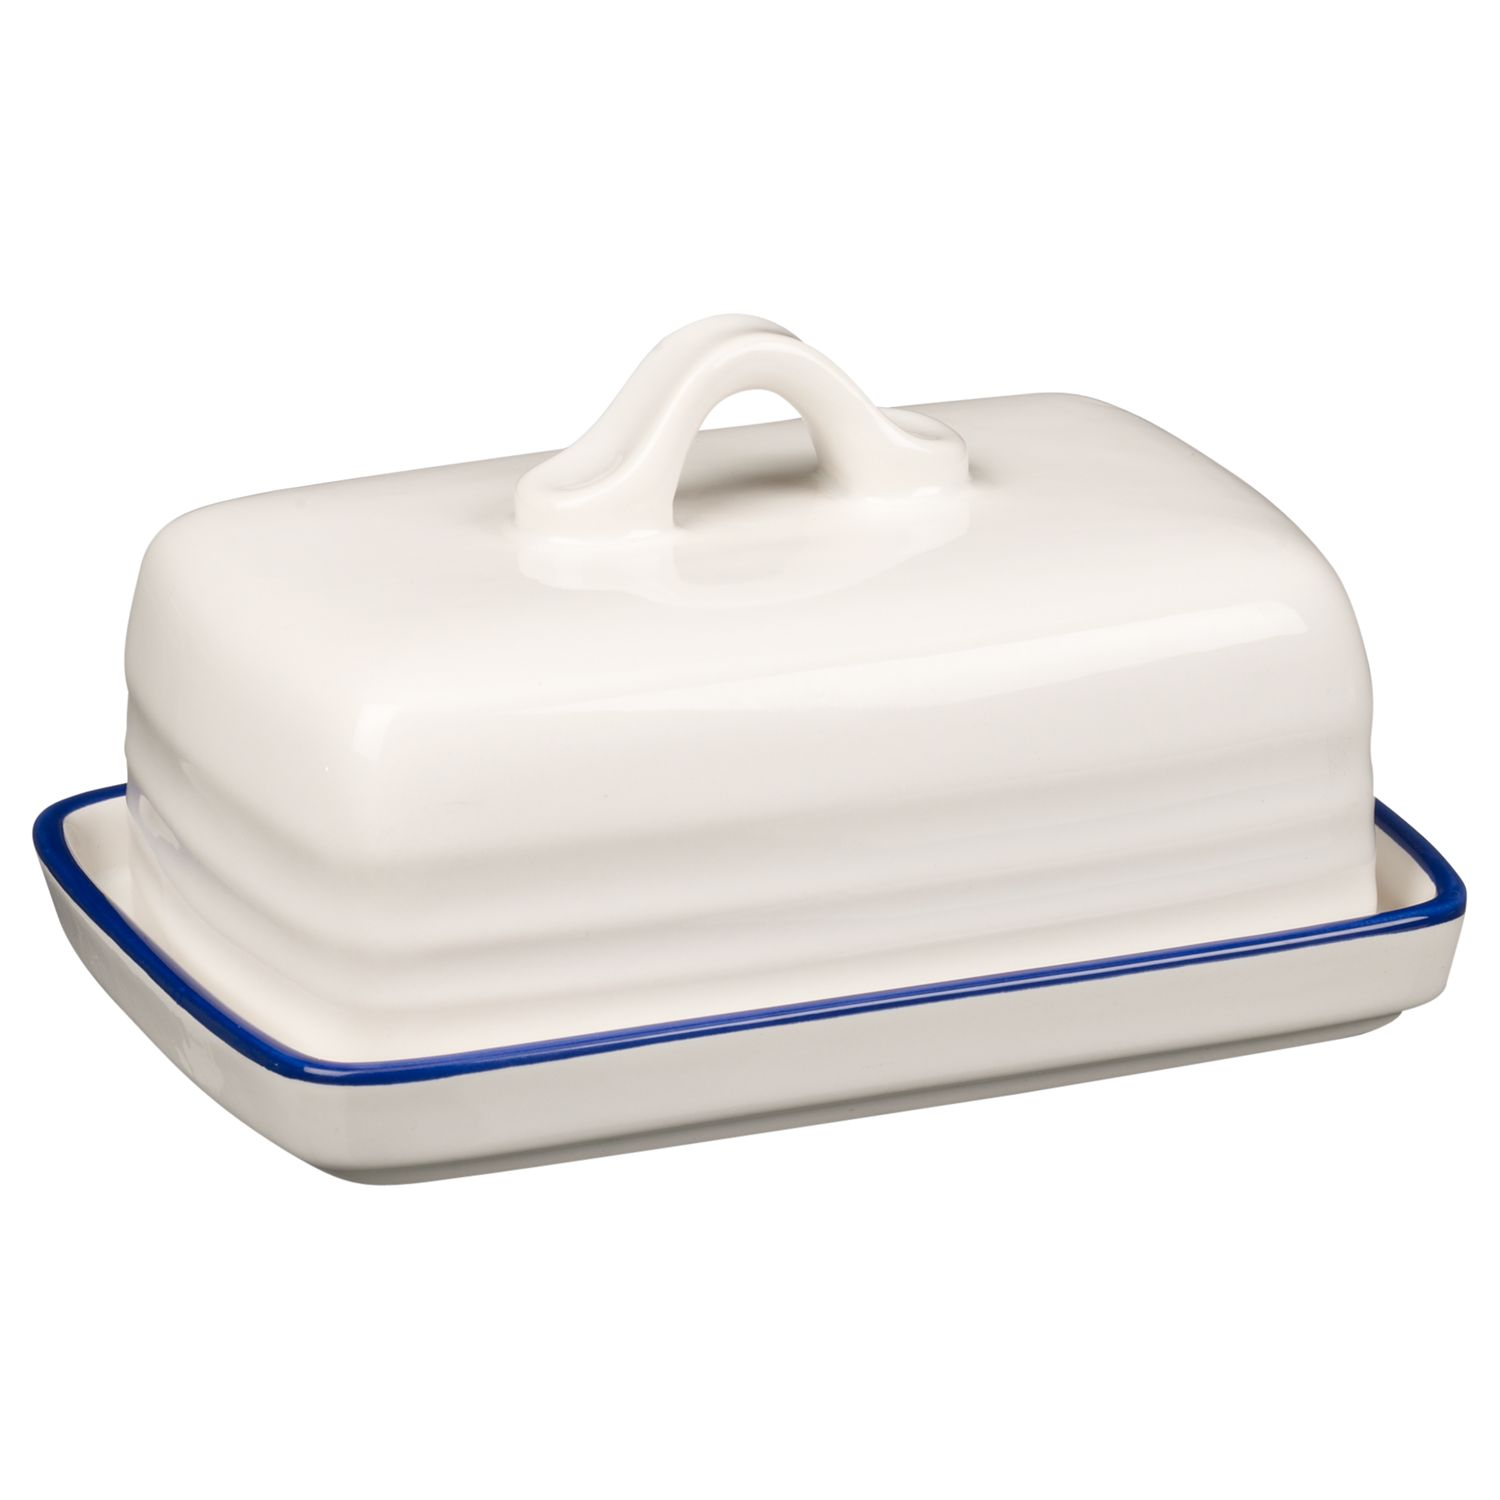 John Lewis Cupola Bone China Butter Dish, White | Compare | Bluewater